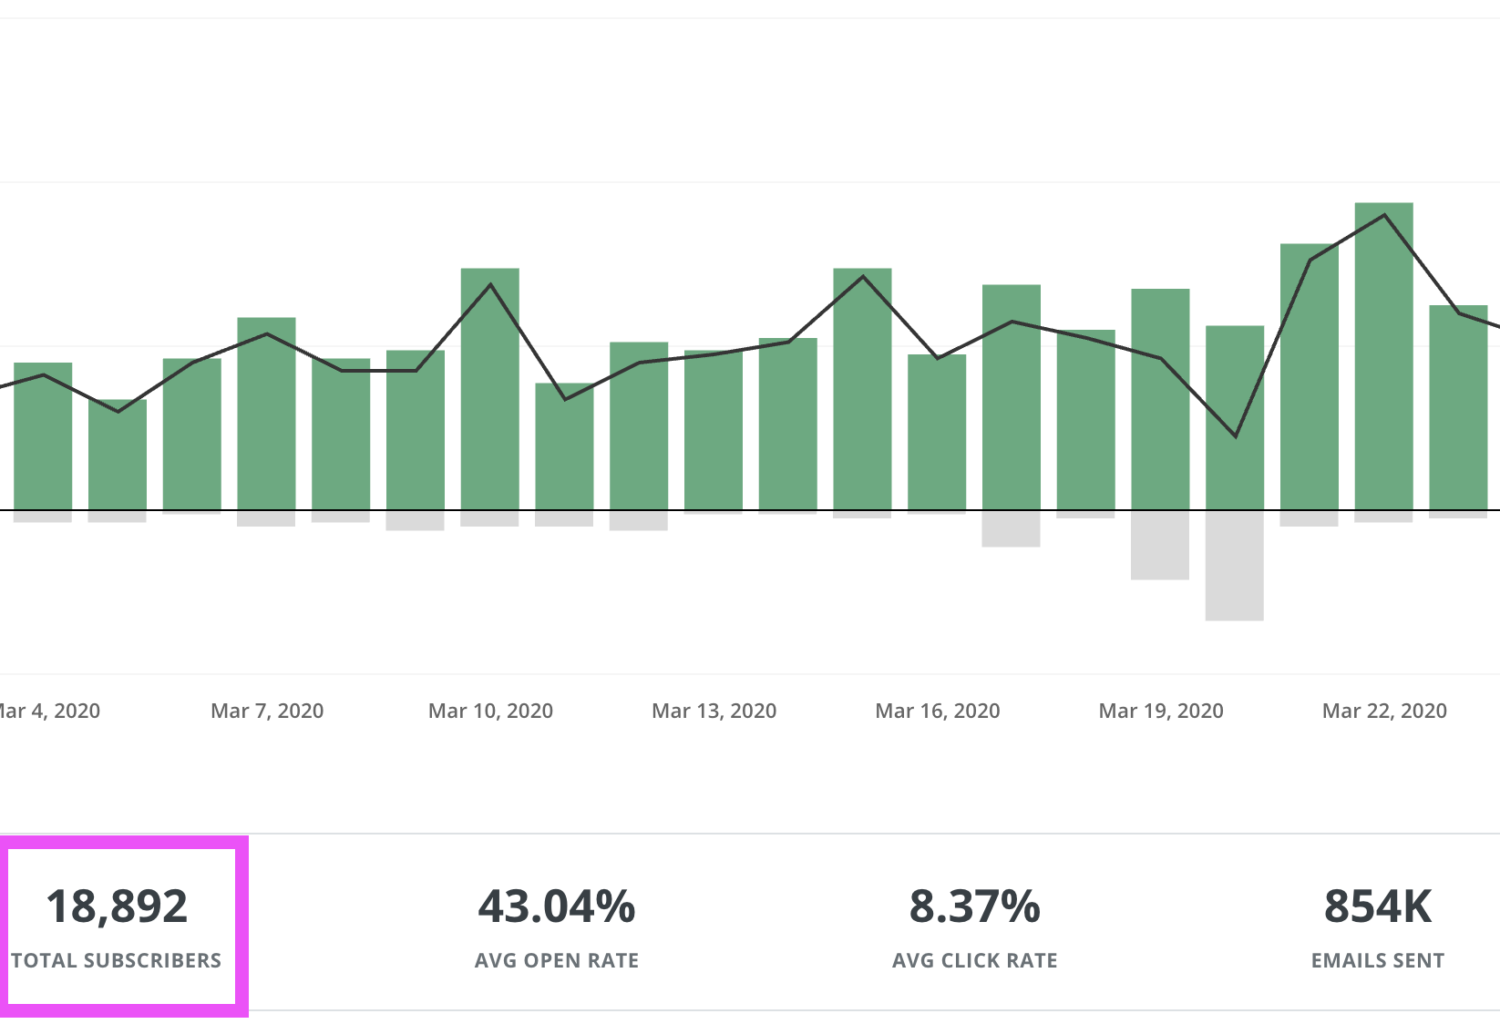 ConvertKit Subscribers March 2020